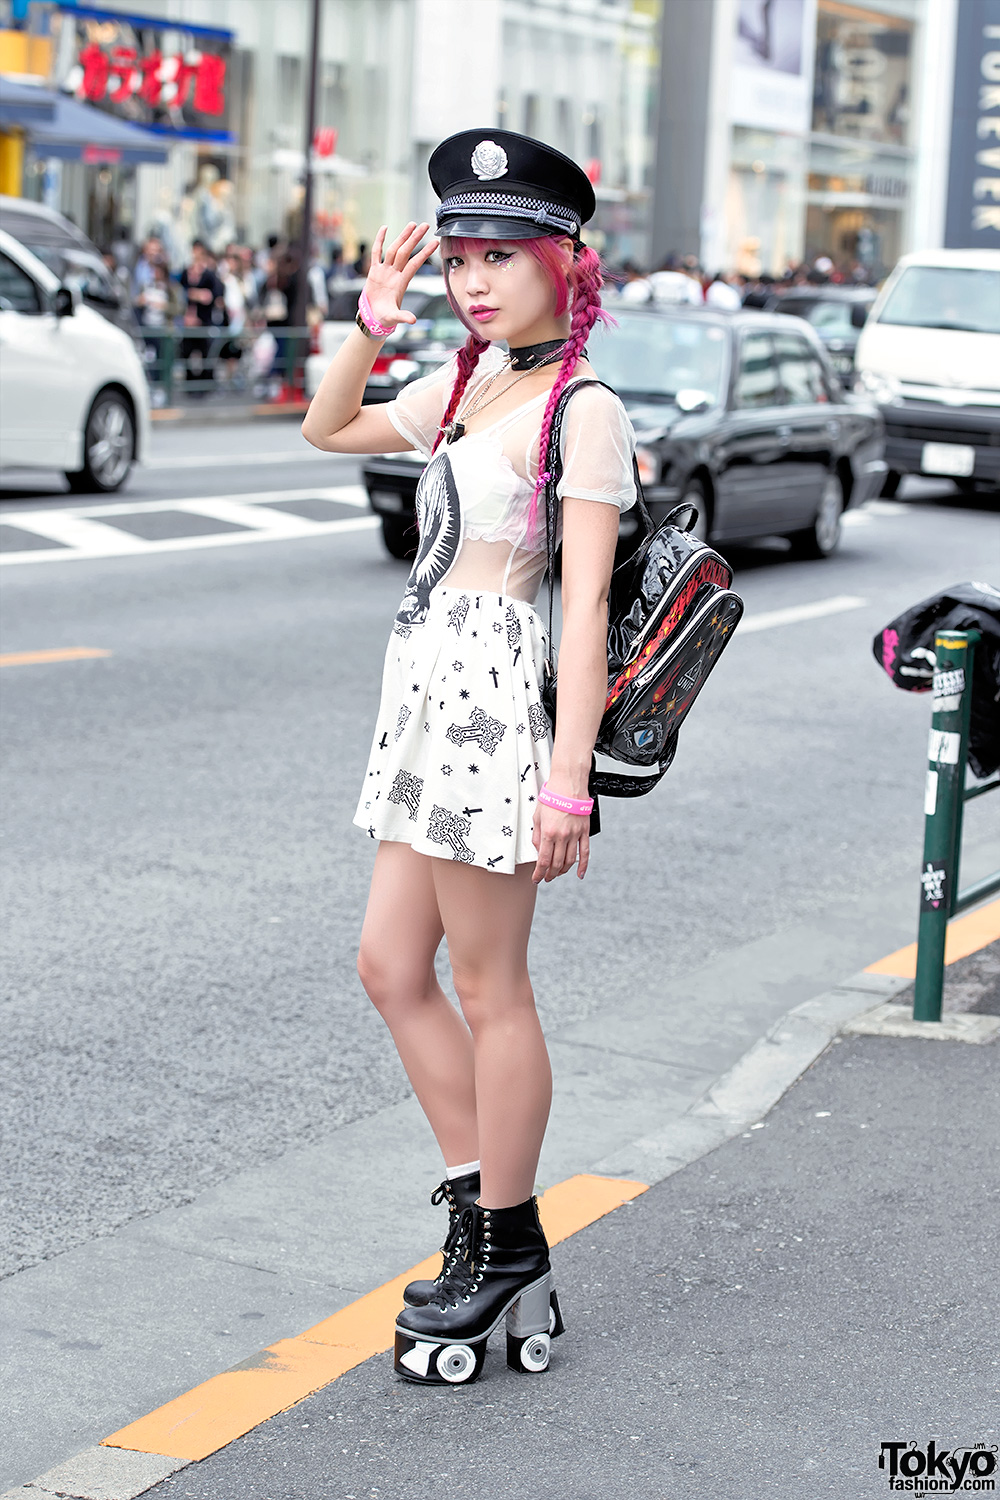 pink hair glad news sheer dress sretsis roller skate